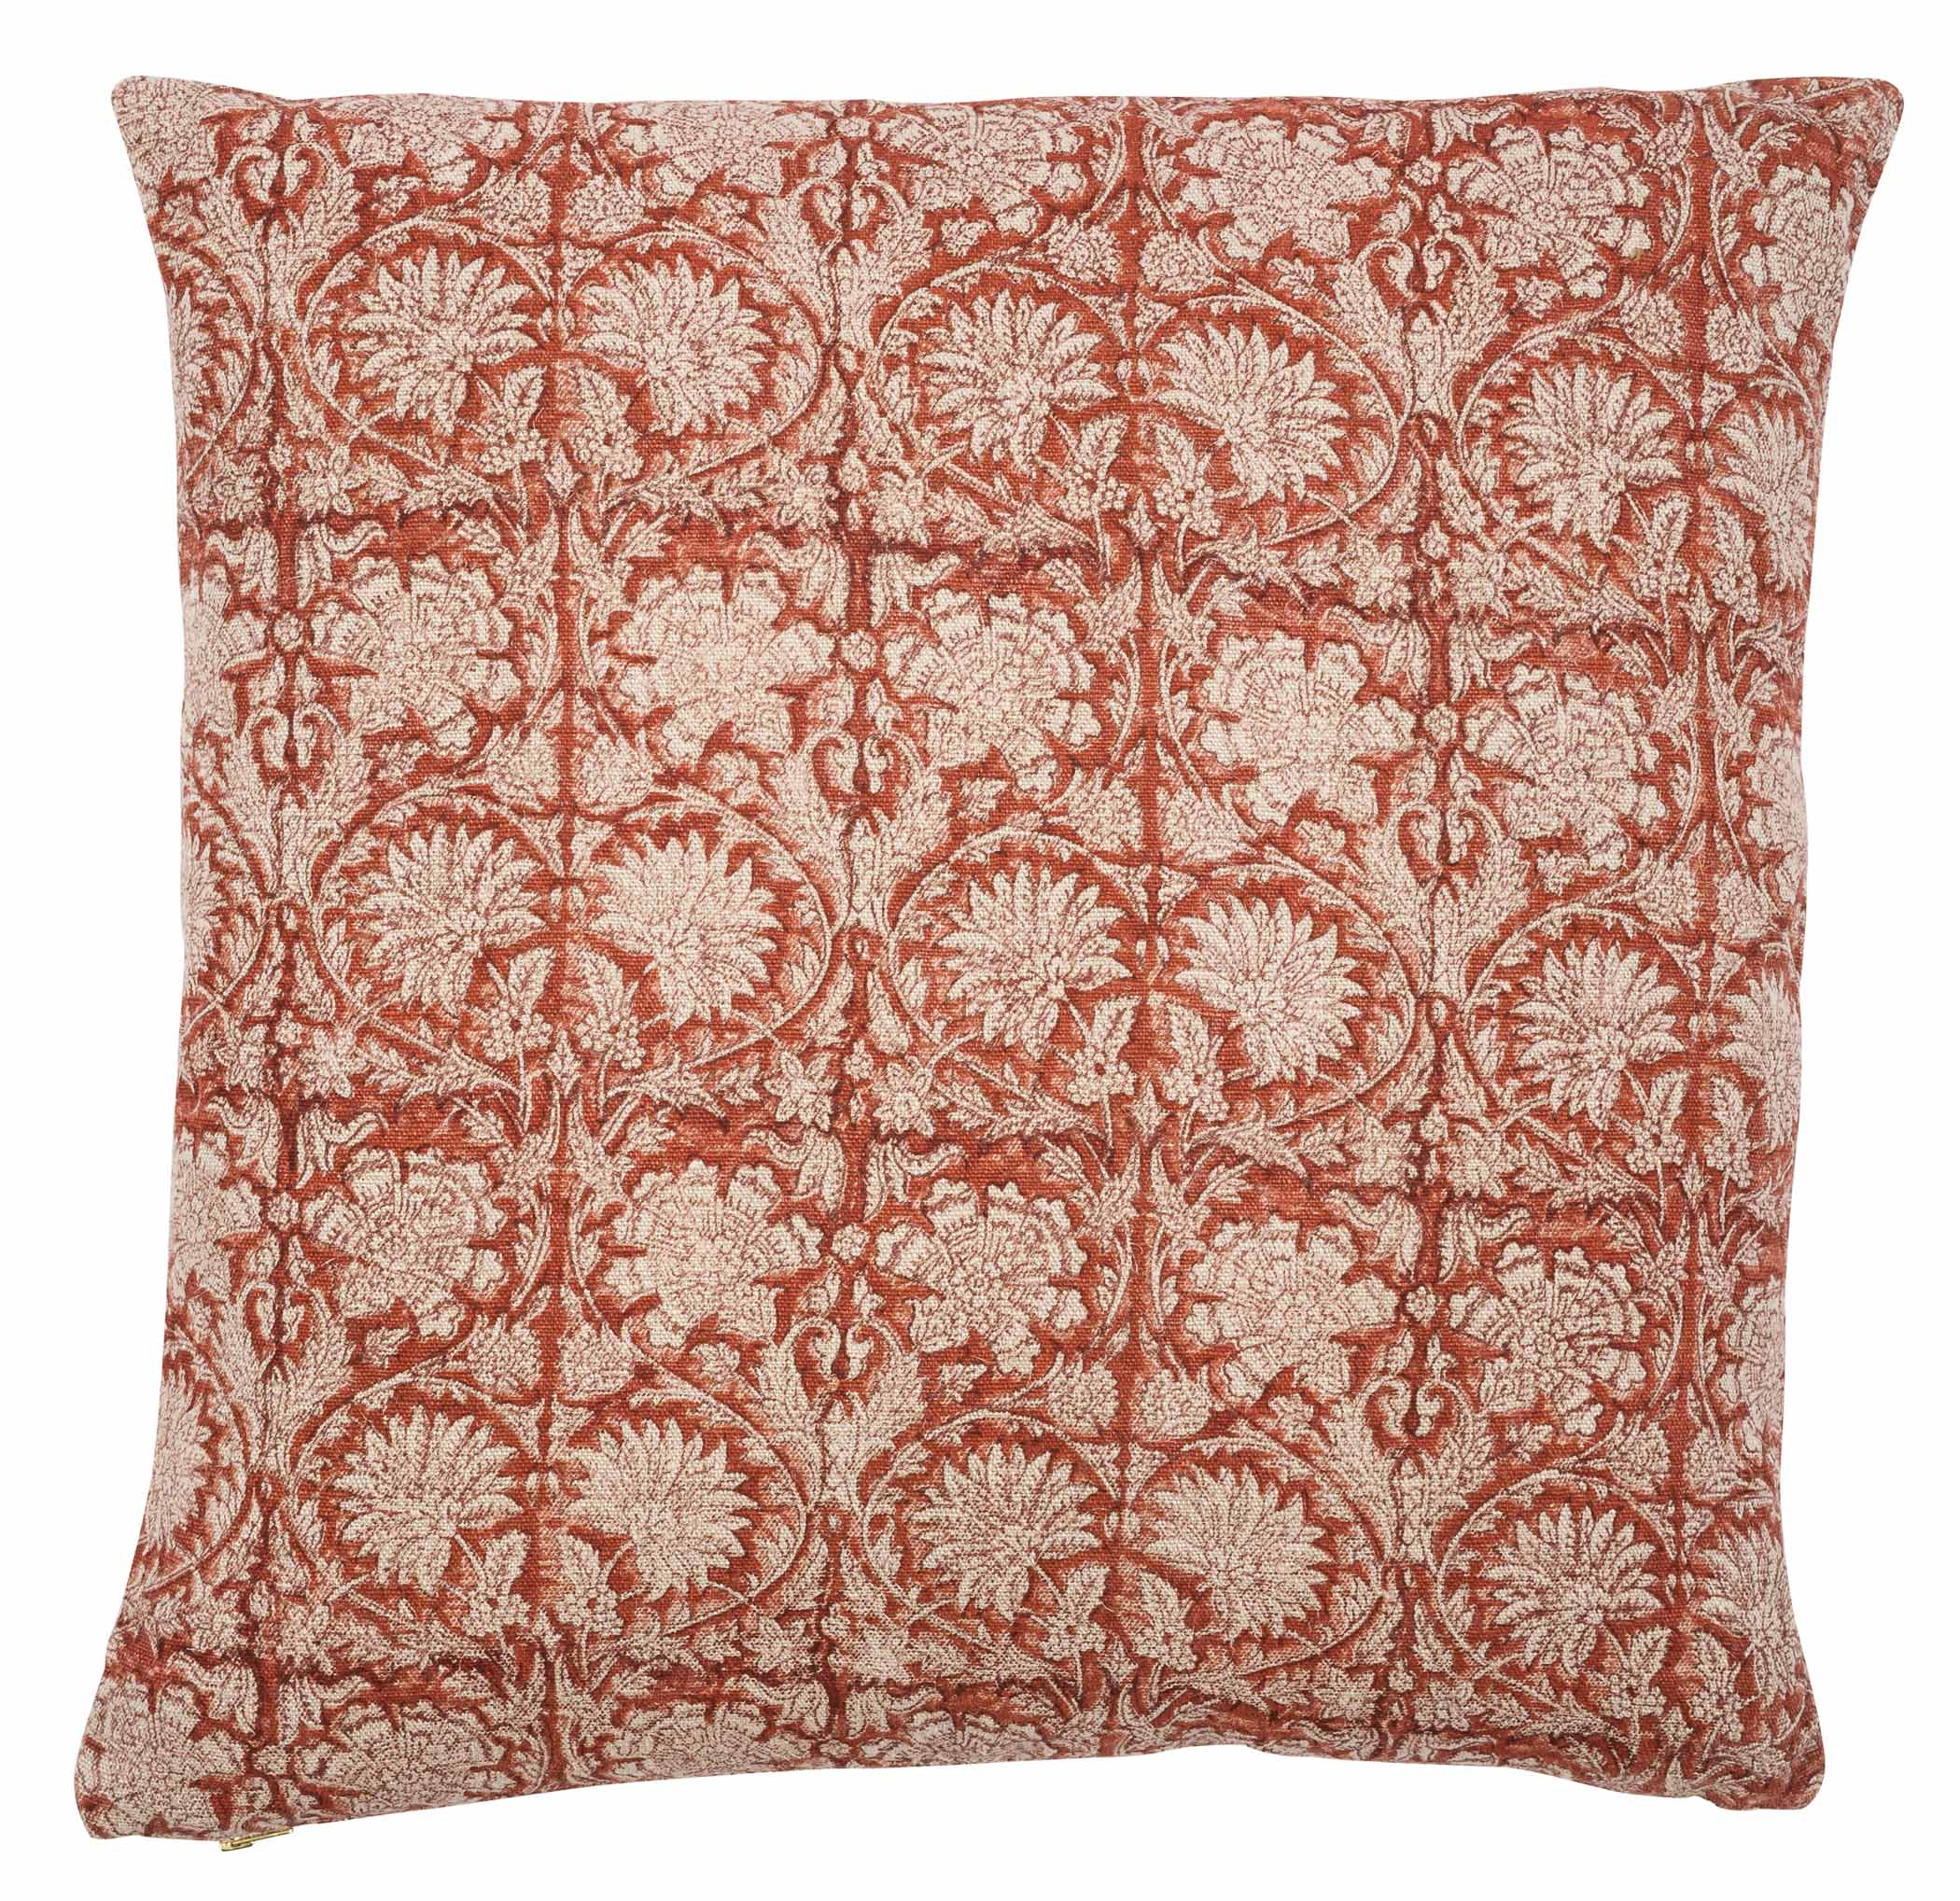 Linen cushion with Paradise print in Spicy Red